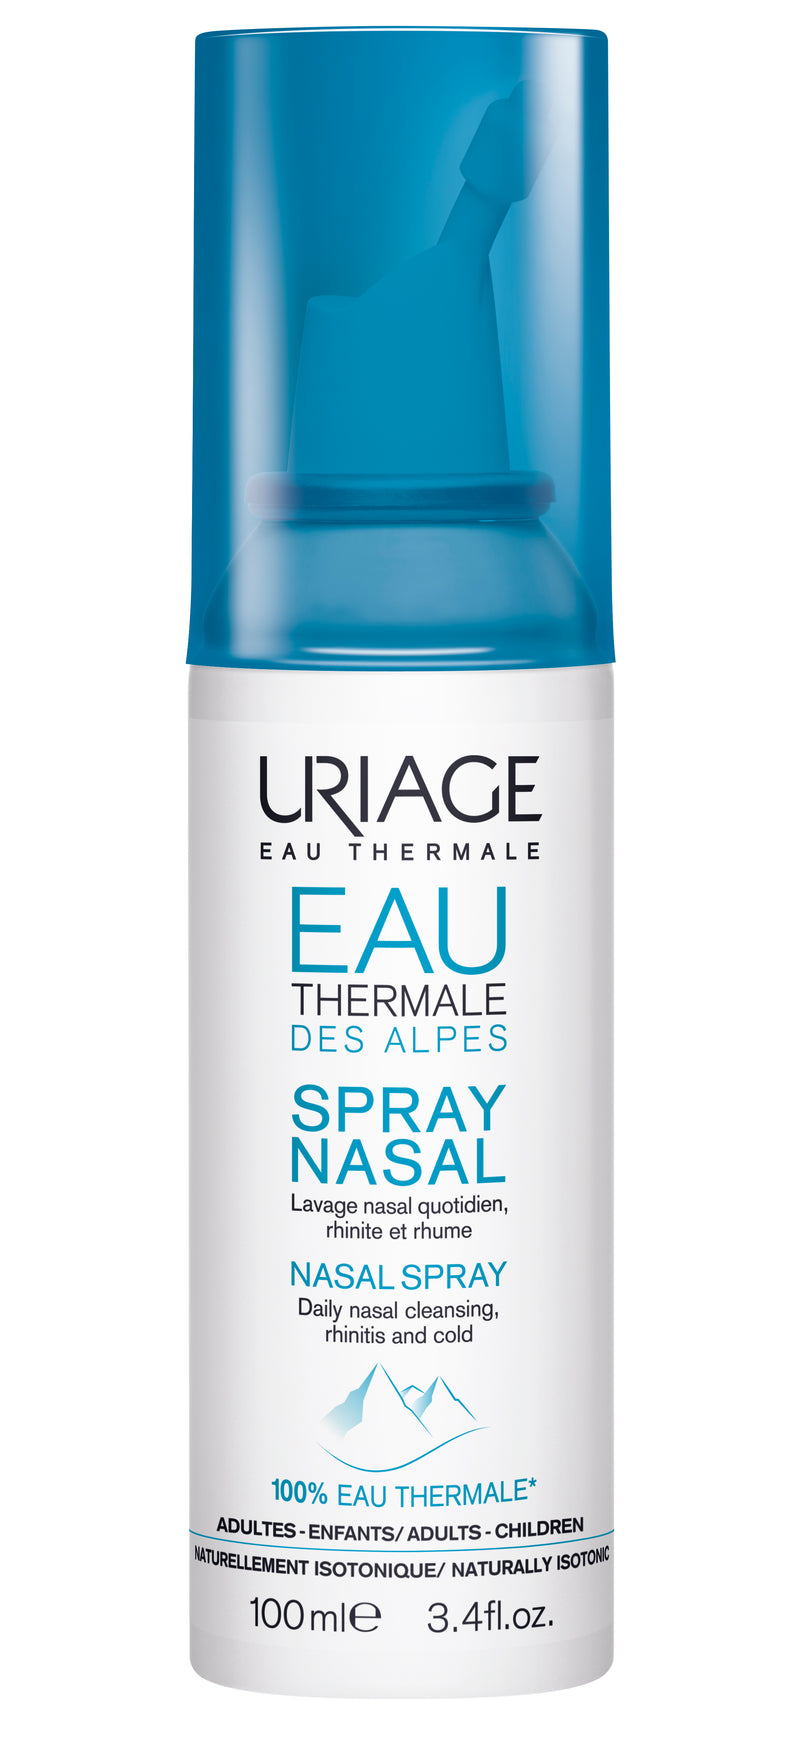 URIAGE Eau Thermale Nasal Spray - 100mlCosmetics Online IE